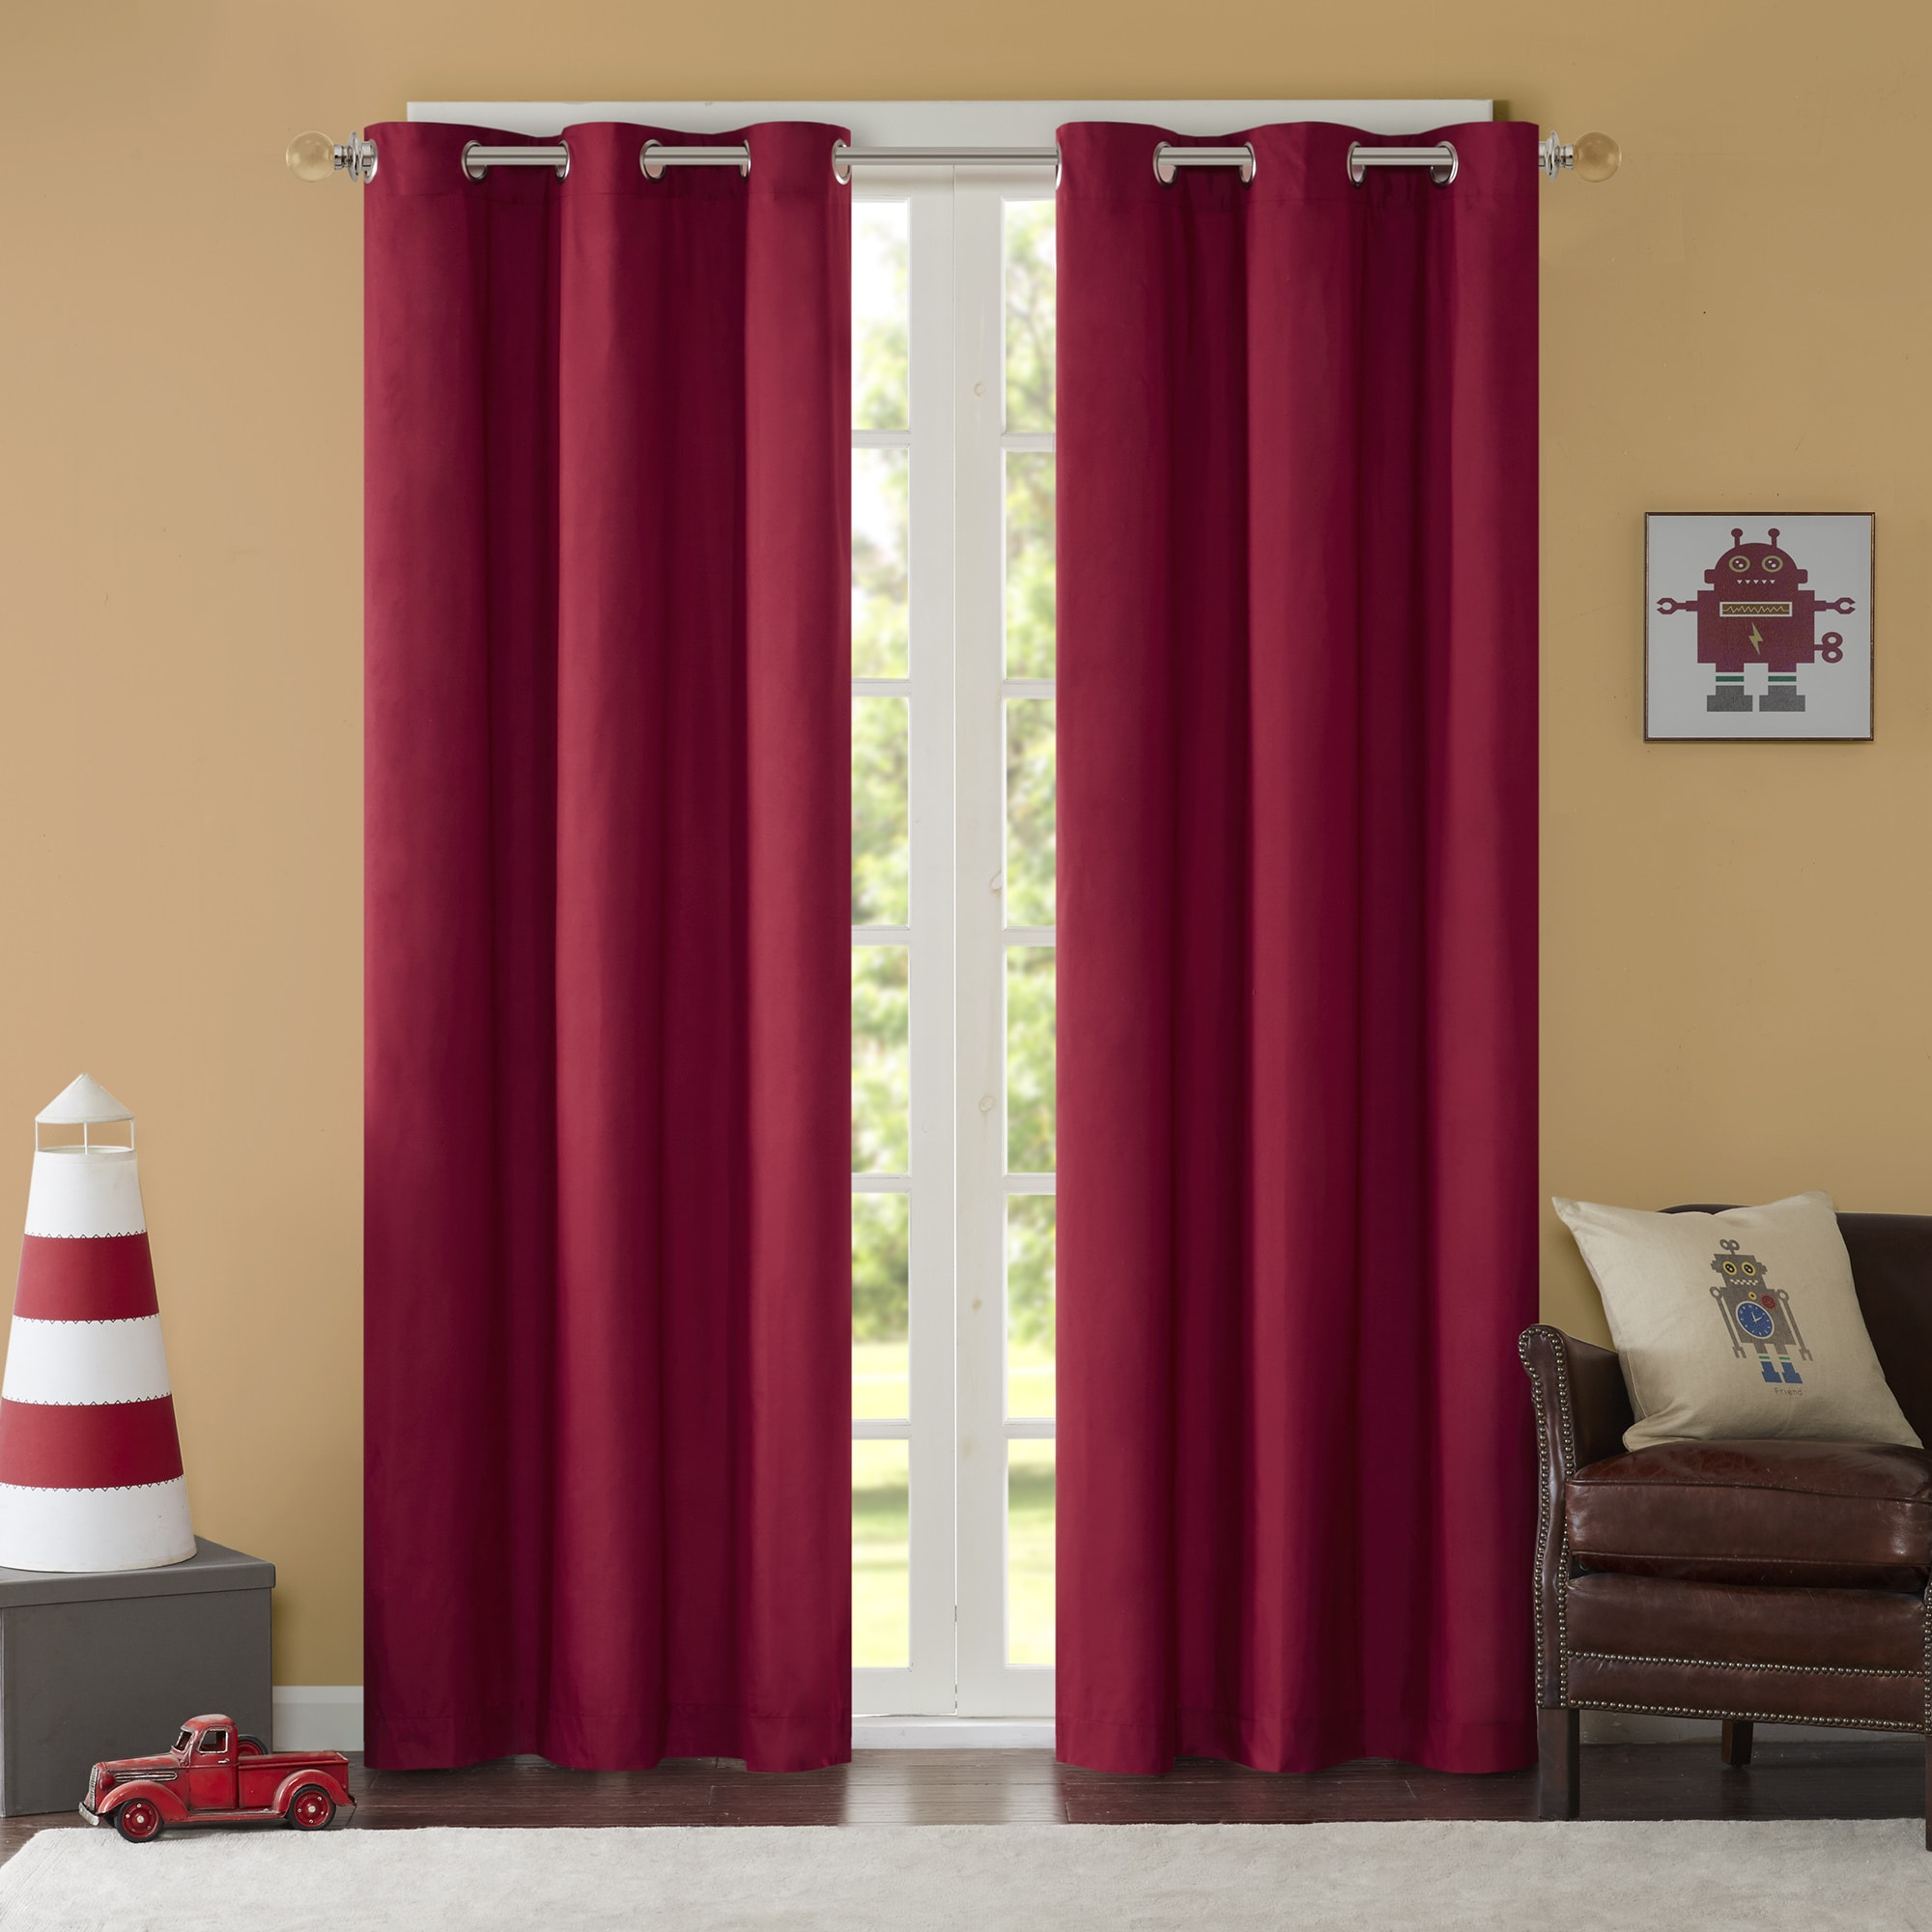 Home Essence Teen Edson Solid Grommet Top Curtain Panel Pair Inside Solid Grommet Top Curtain Panel Pairs (View 14 of 30)